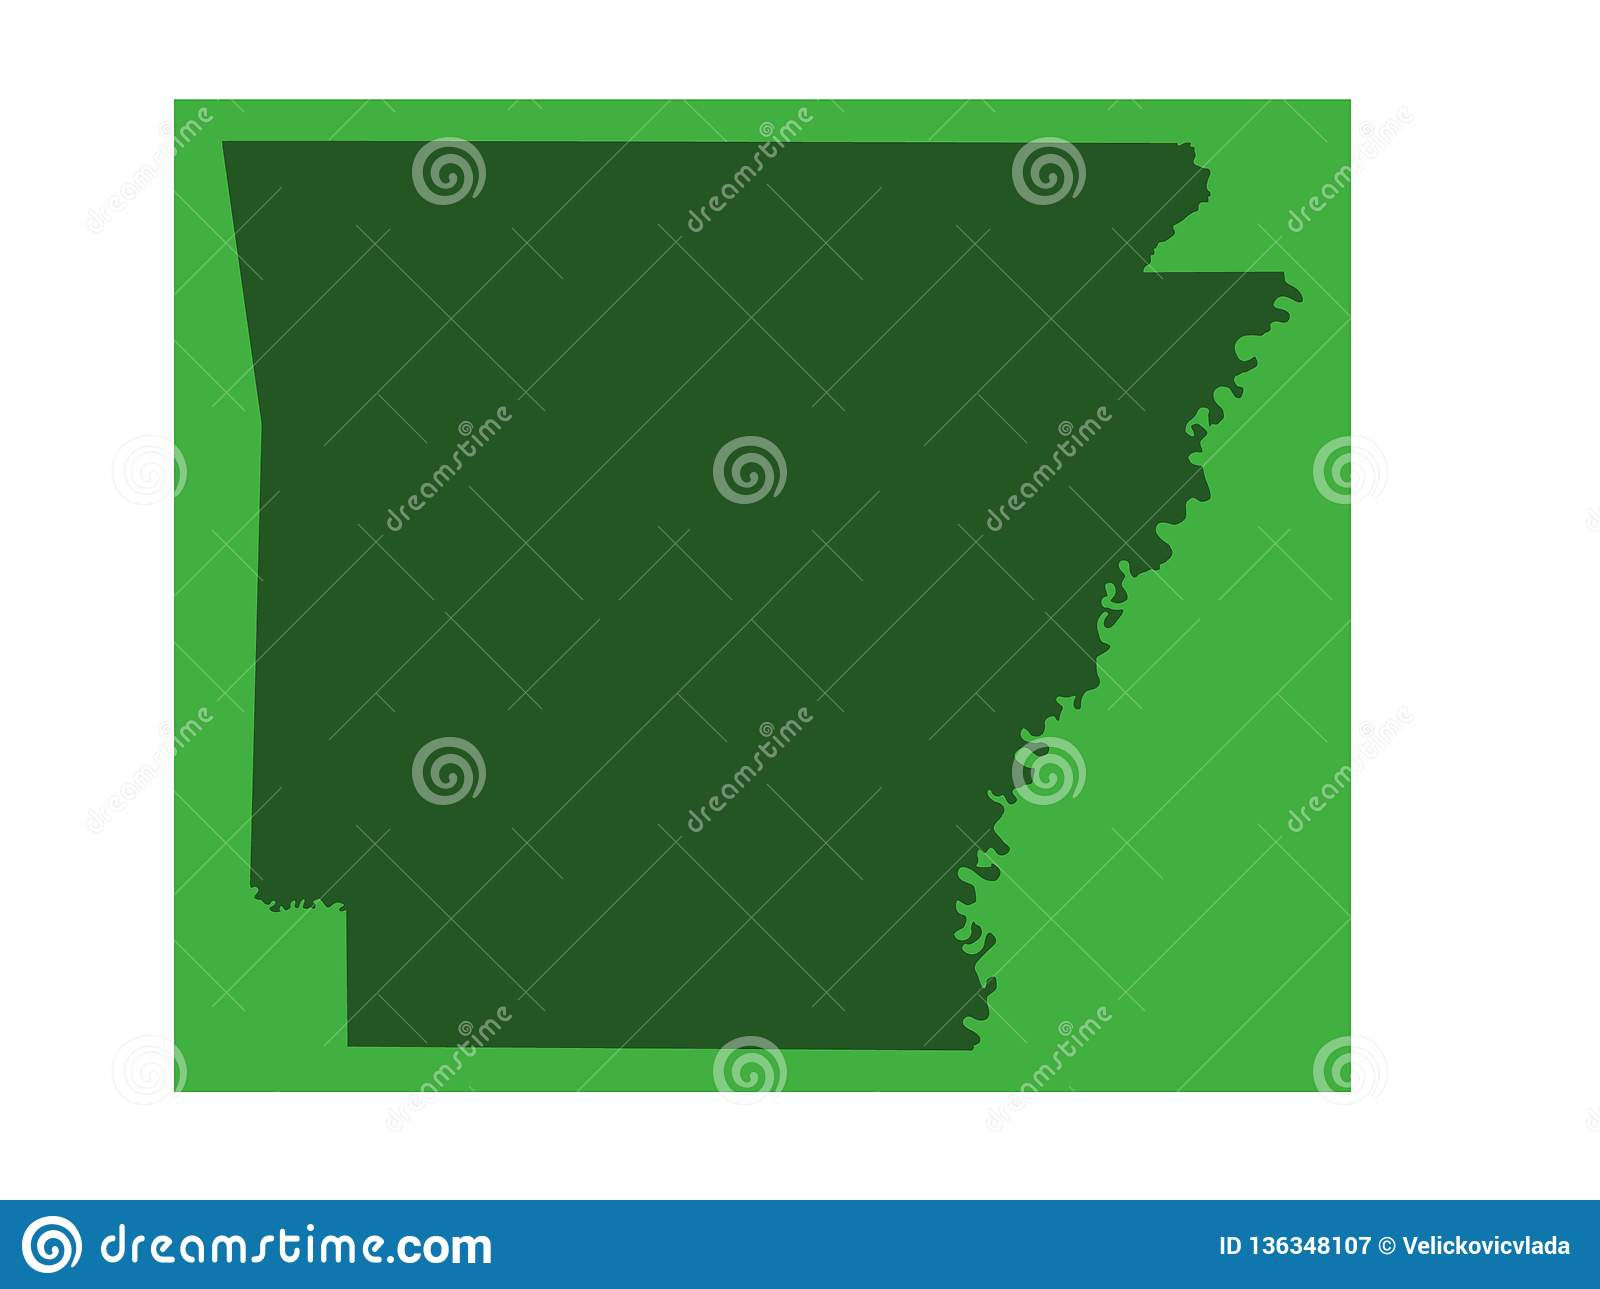 Arkansas Map - State In The Southern Region Of The United States ...